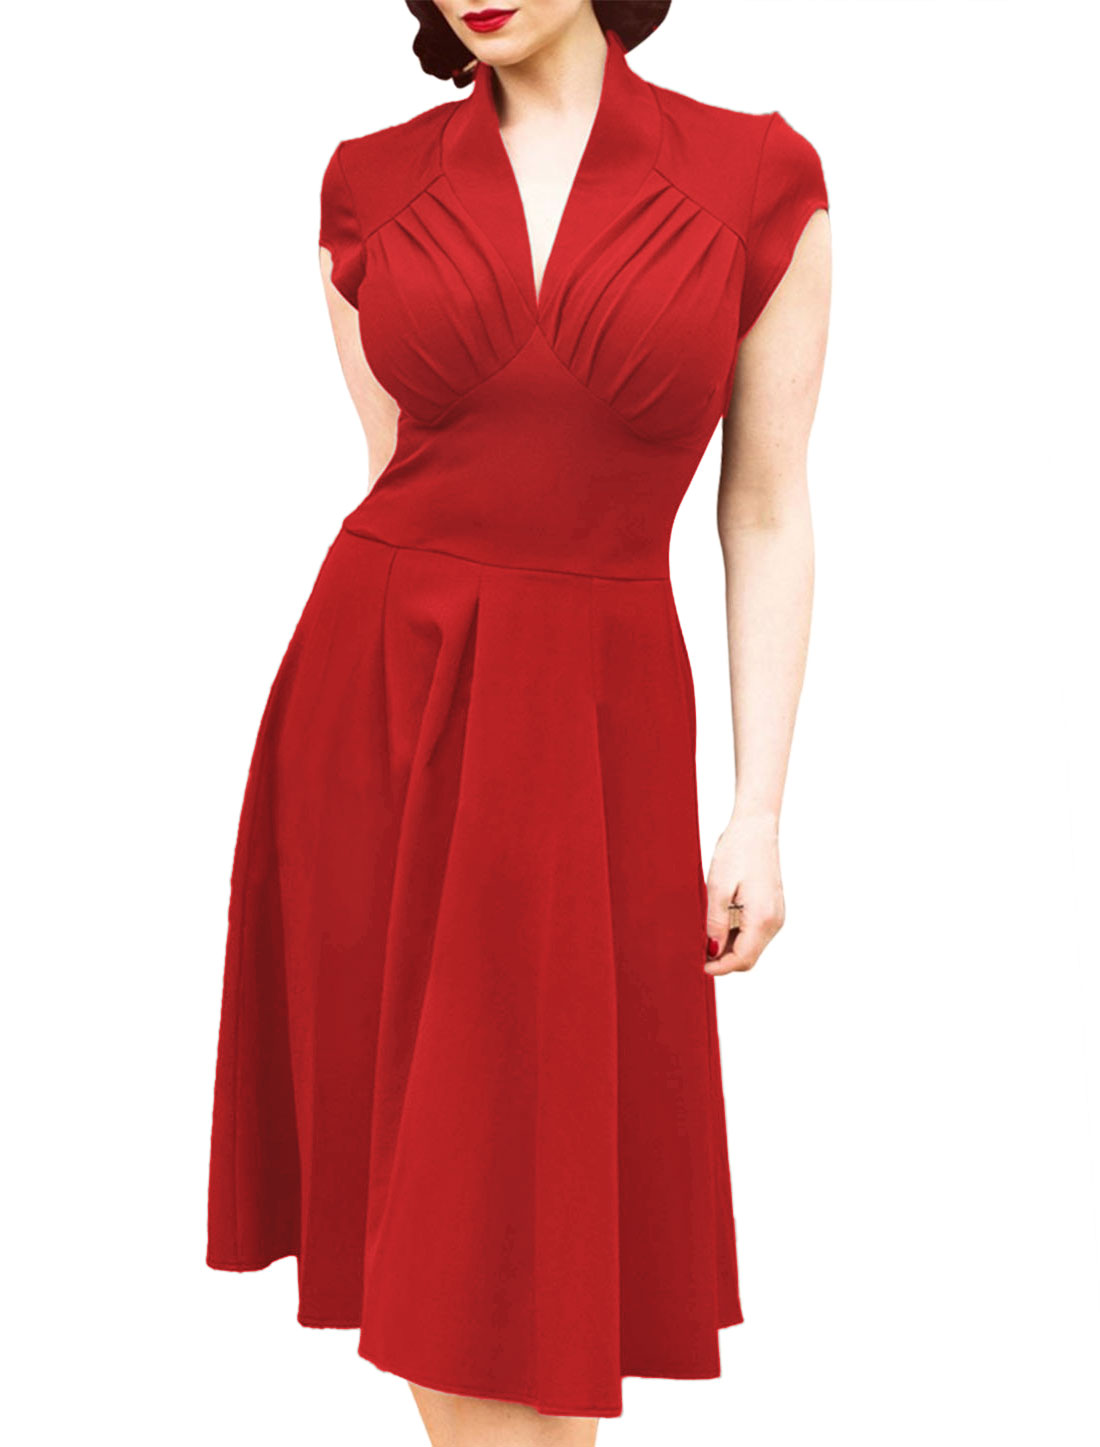 Women V Neck Ruched Cap Sleeves Fit and Flare Dress Red M